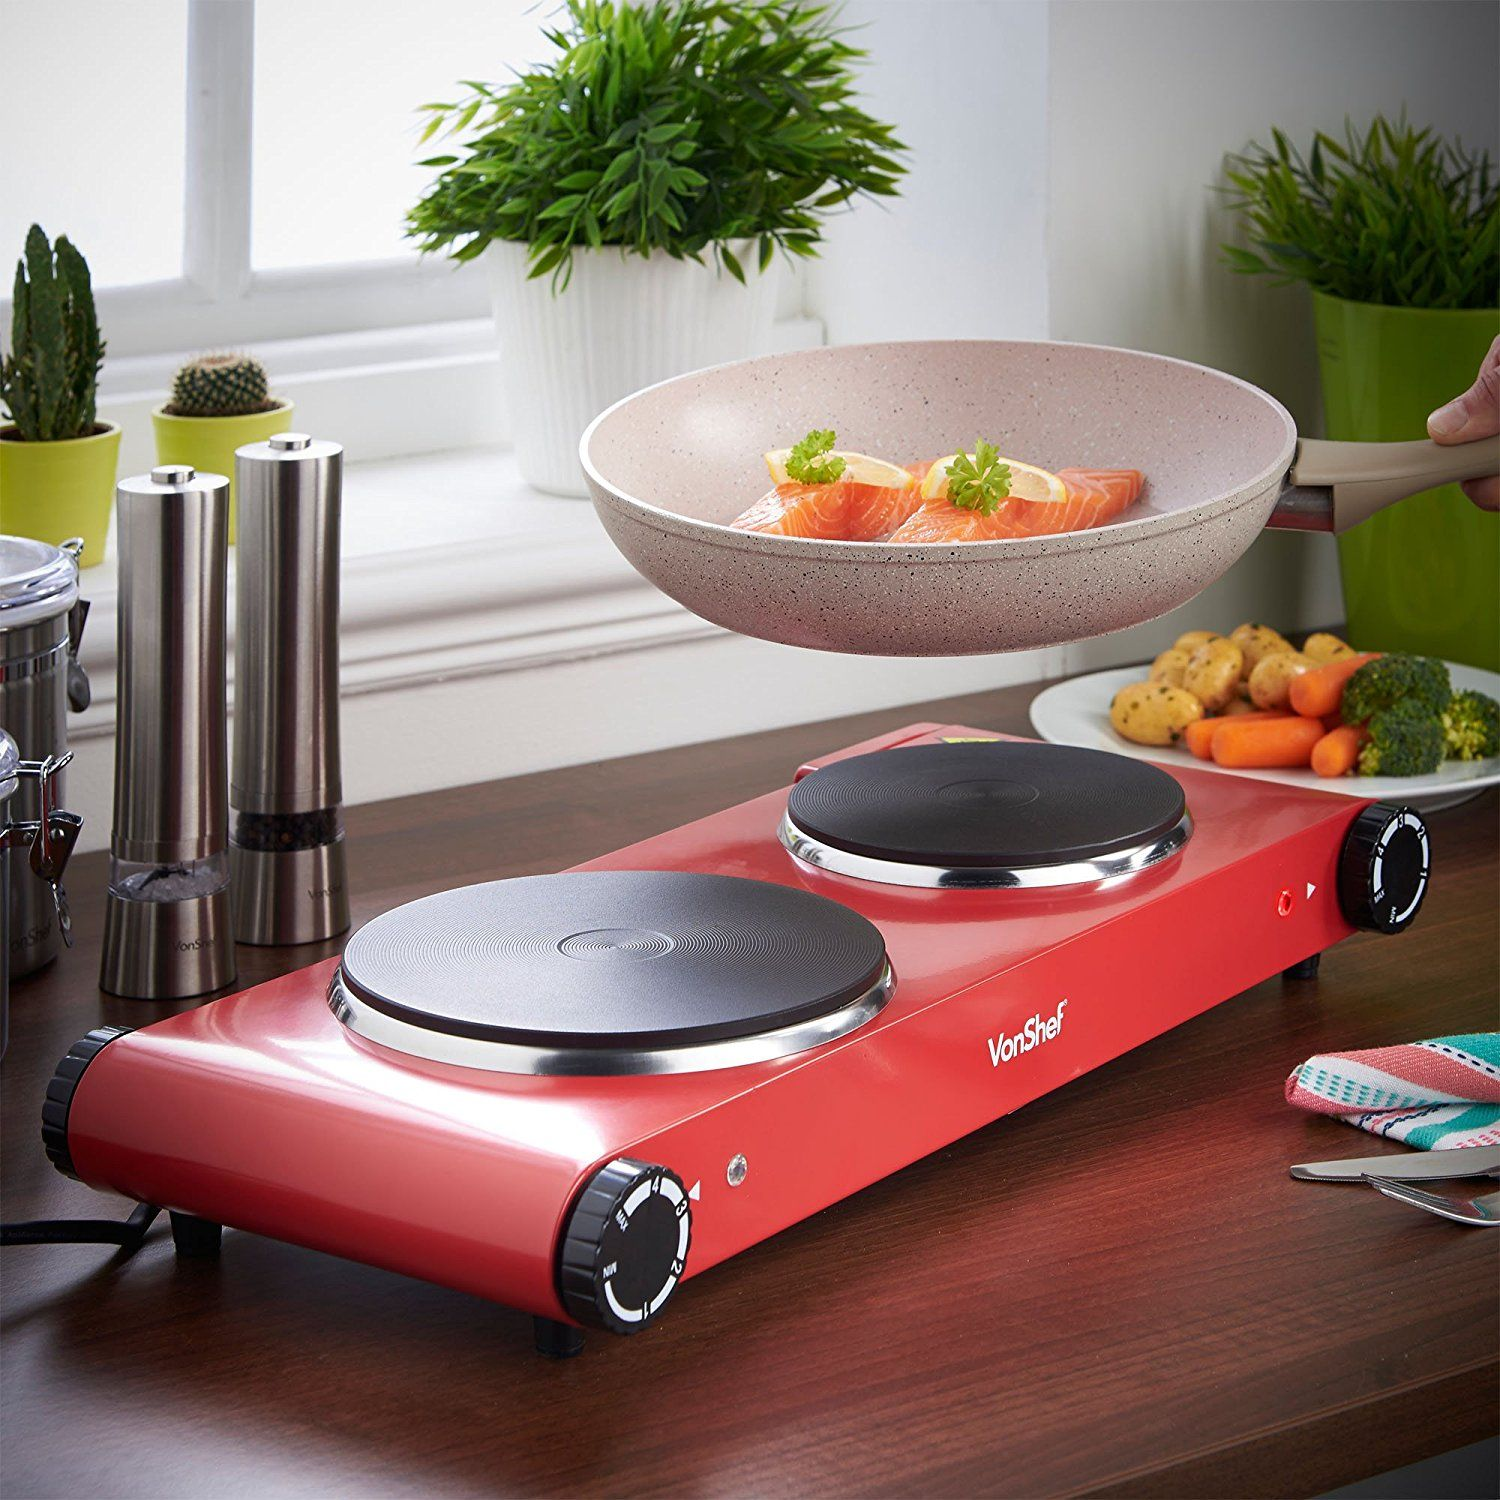 VonShef Double Hot Plate, Premium Electric Red Cooker Hob